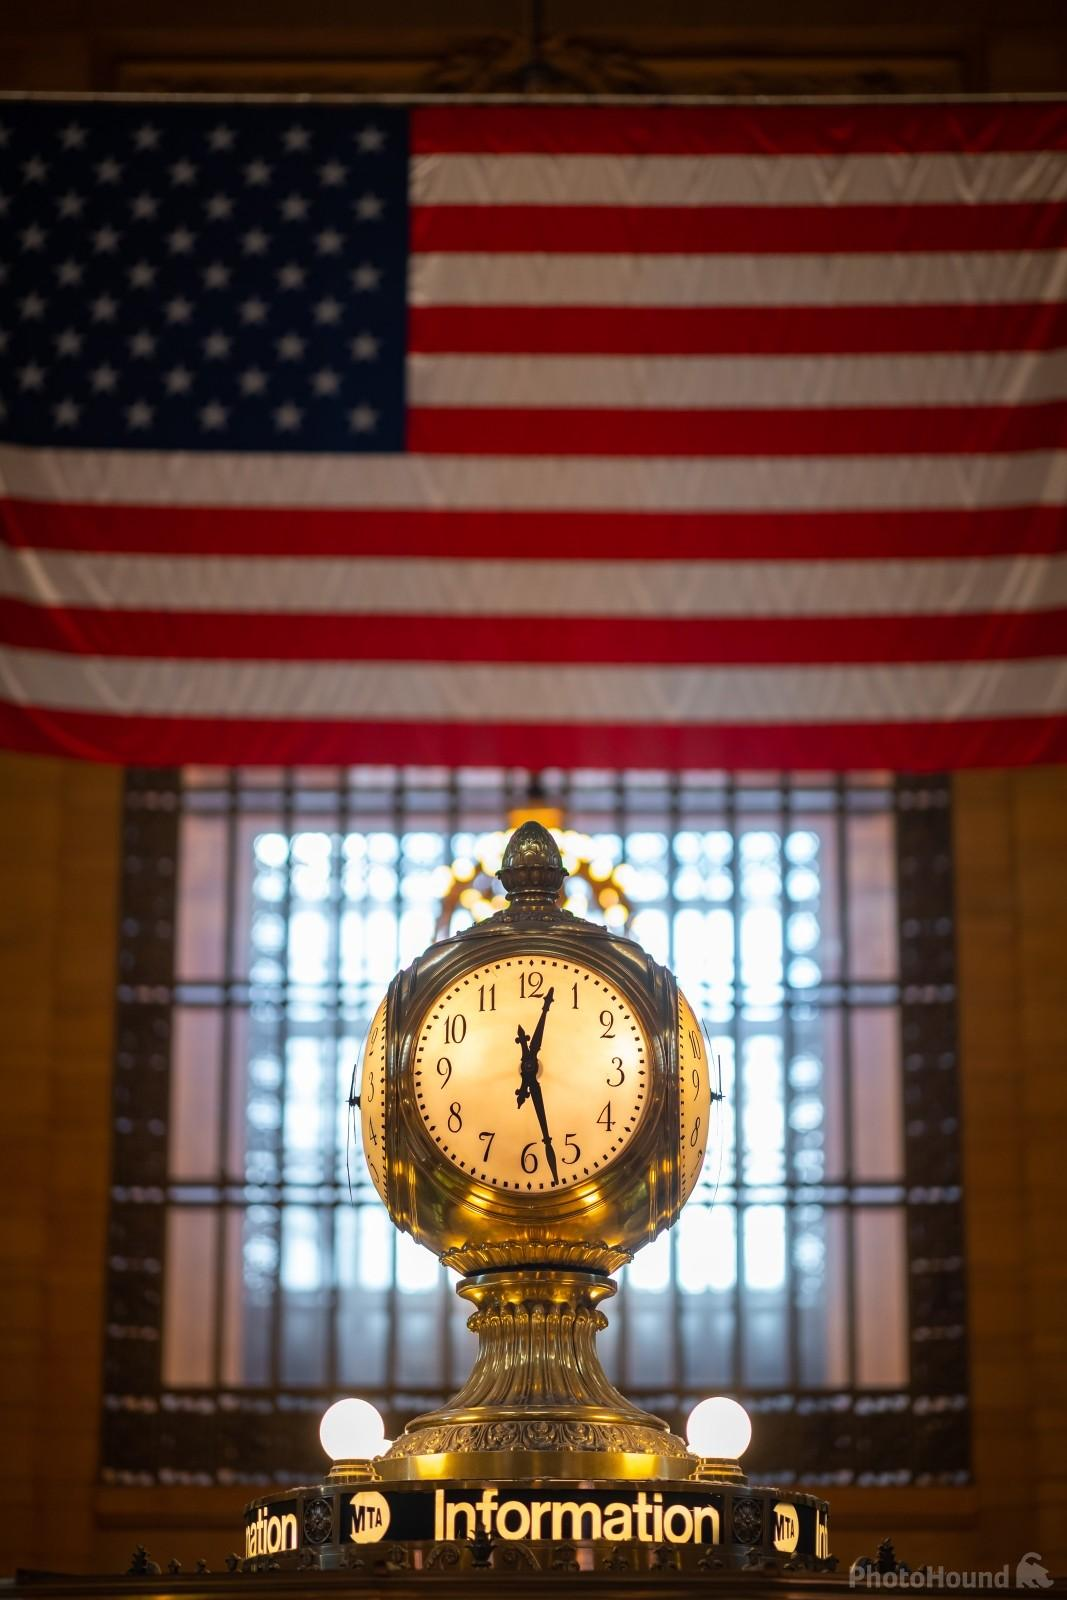 Detail of the clock in the middle of the main hall of the Grand Central Terminal